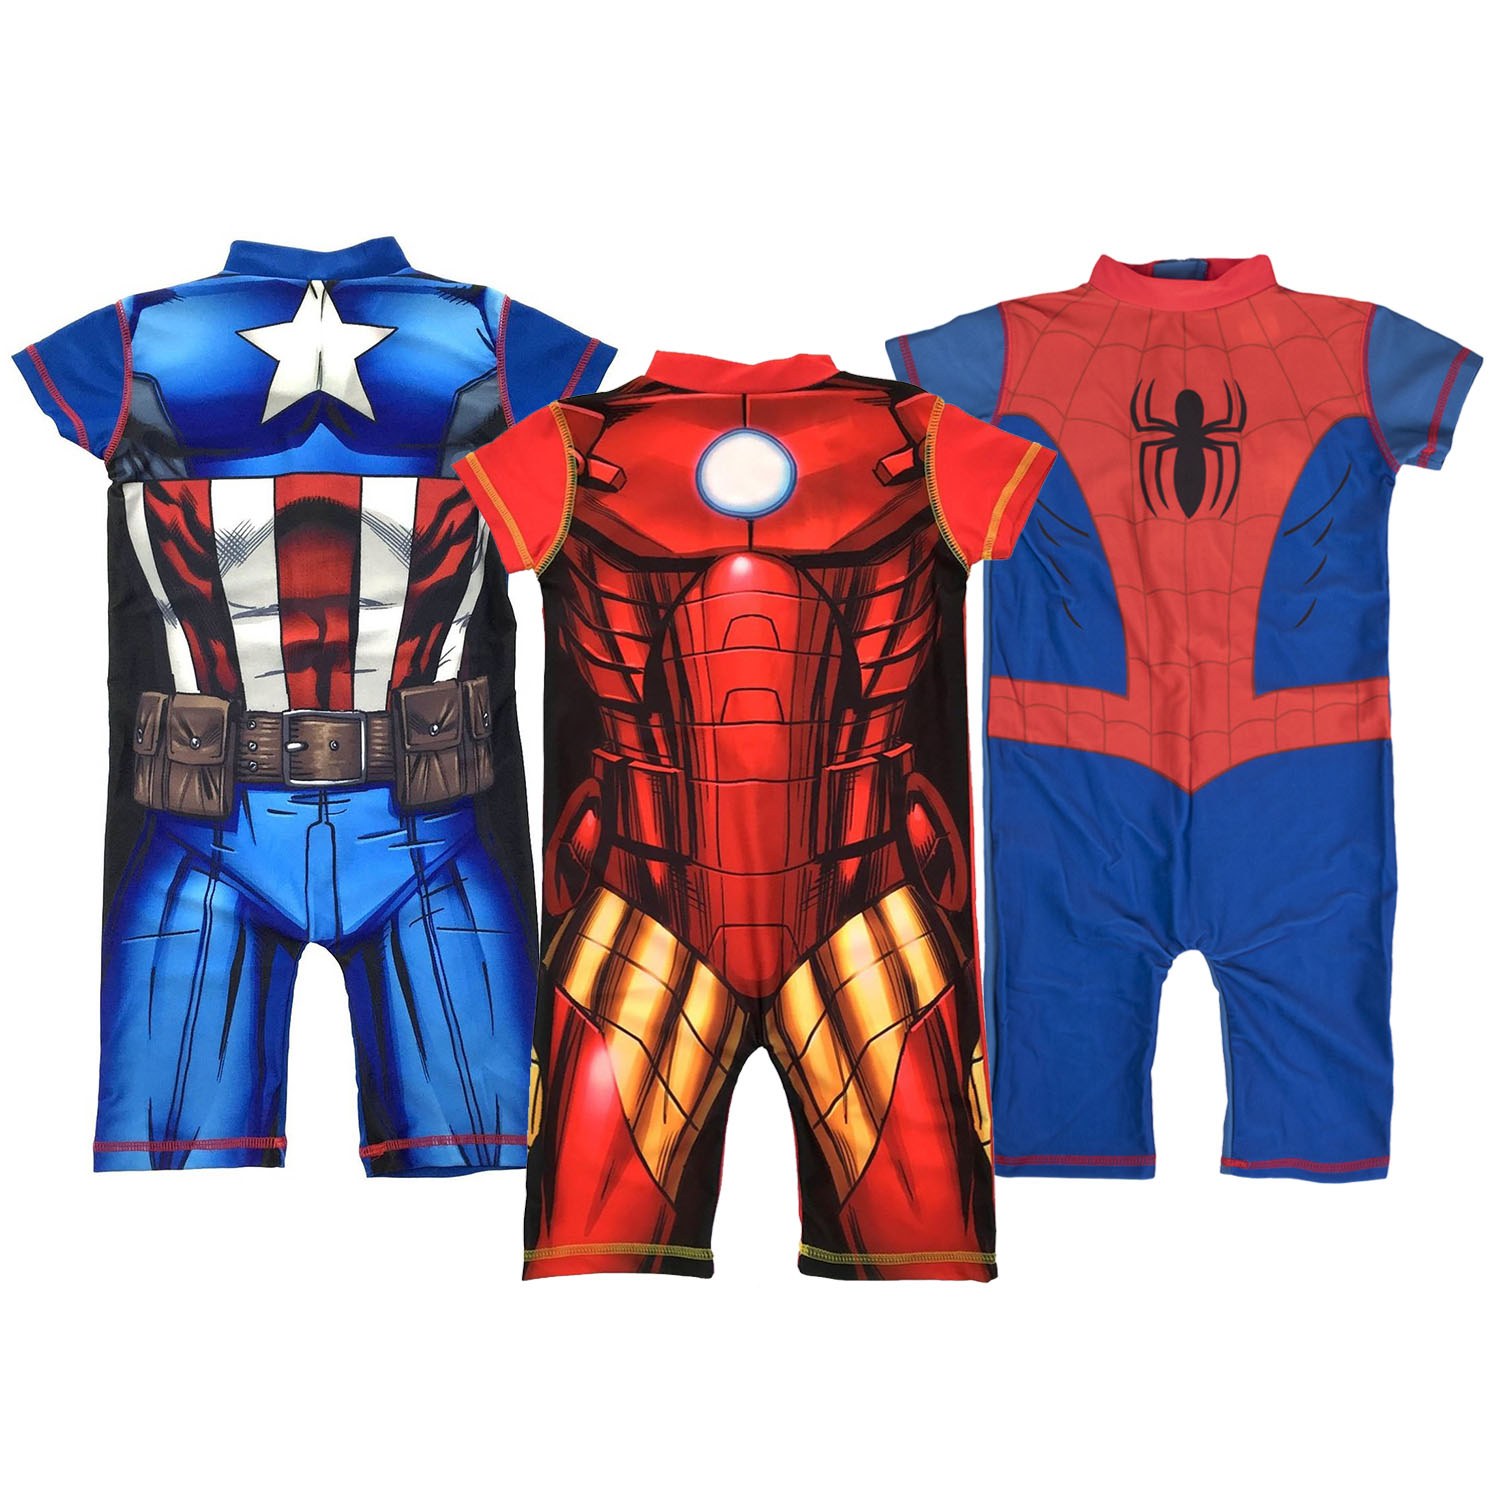 Childrens//Kids Captain America Swimming Costume Surf Suit Boys Swimwear Age 18 Months-5 Years